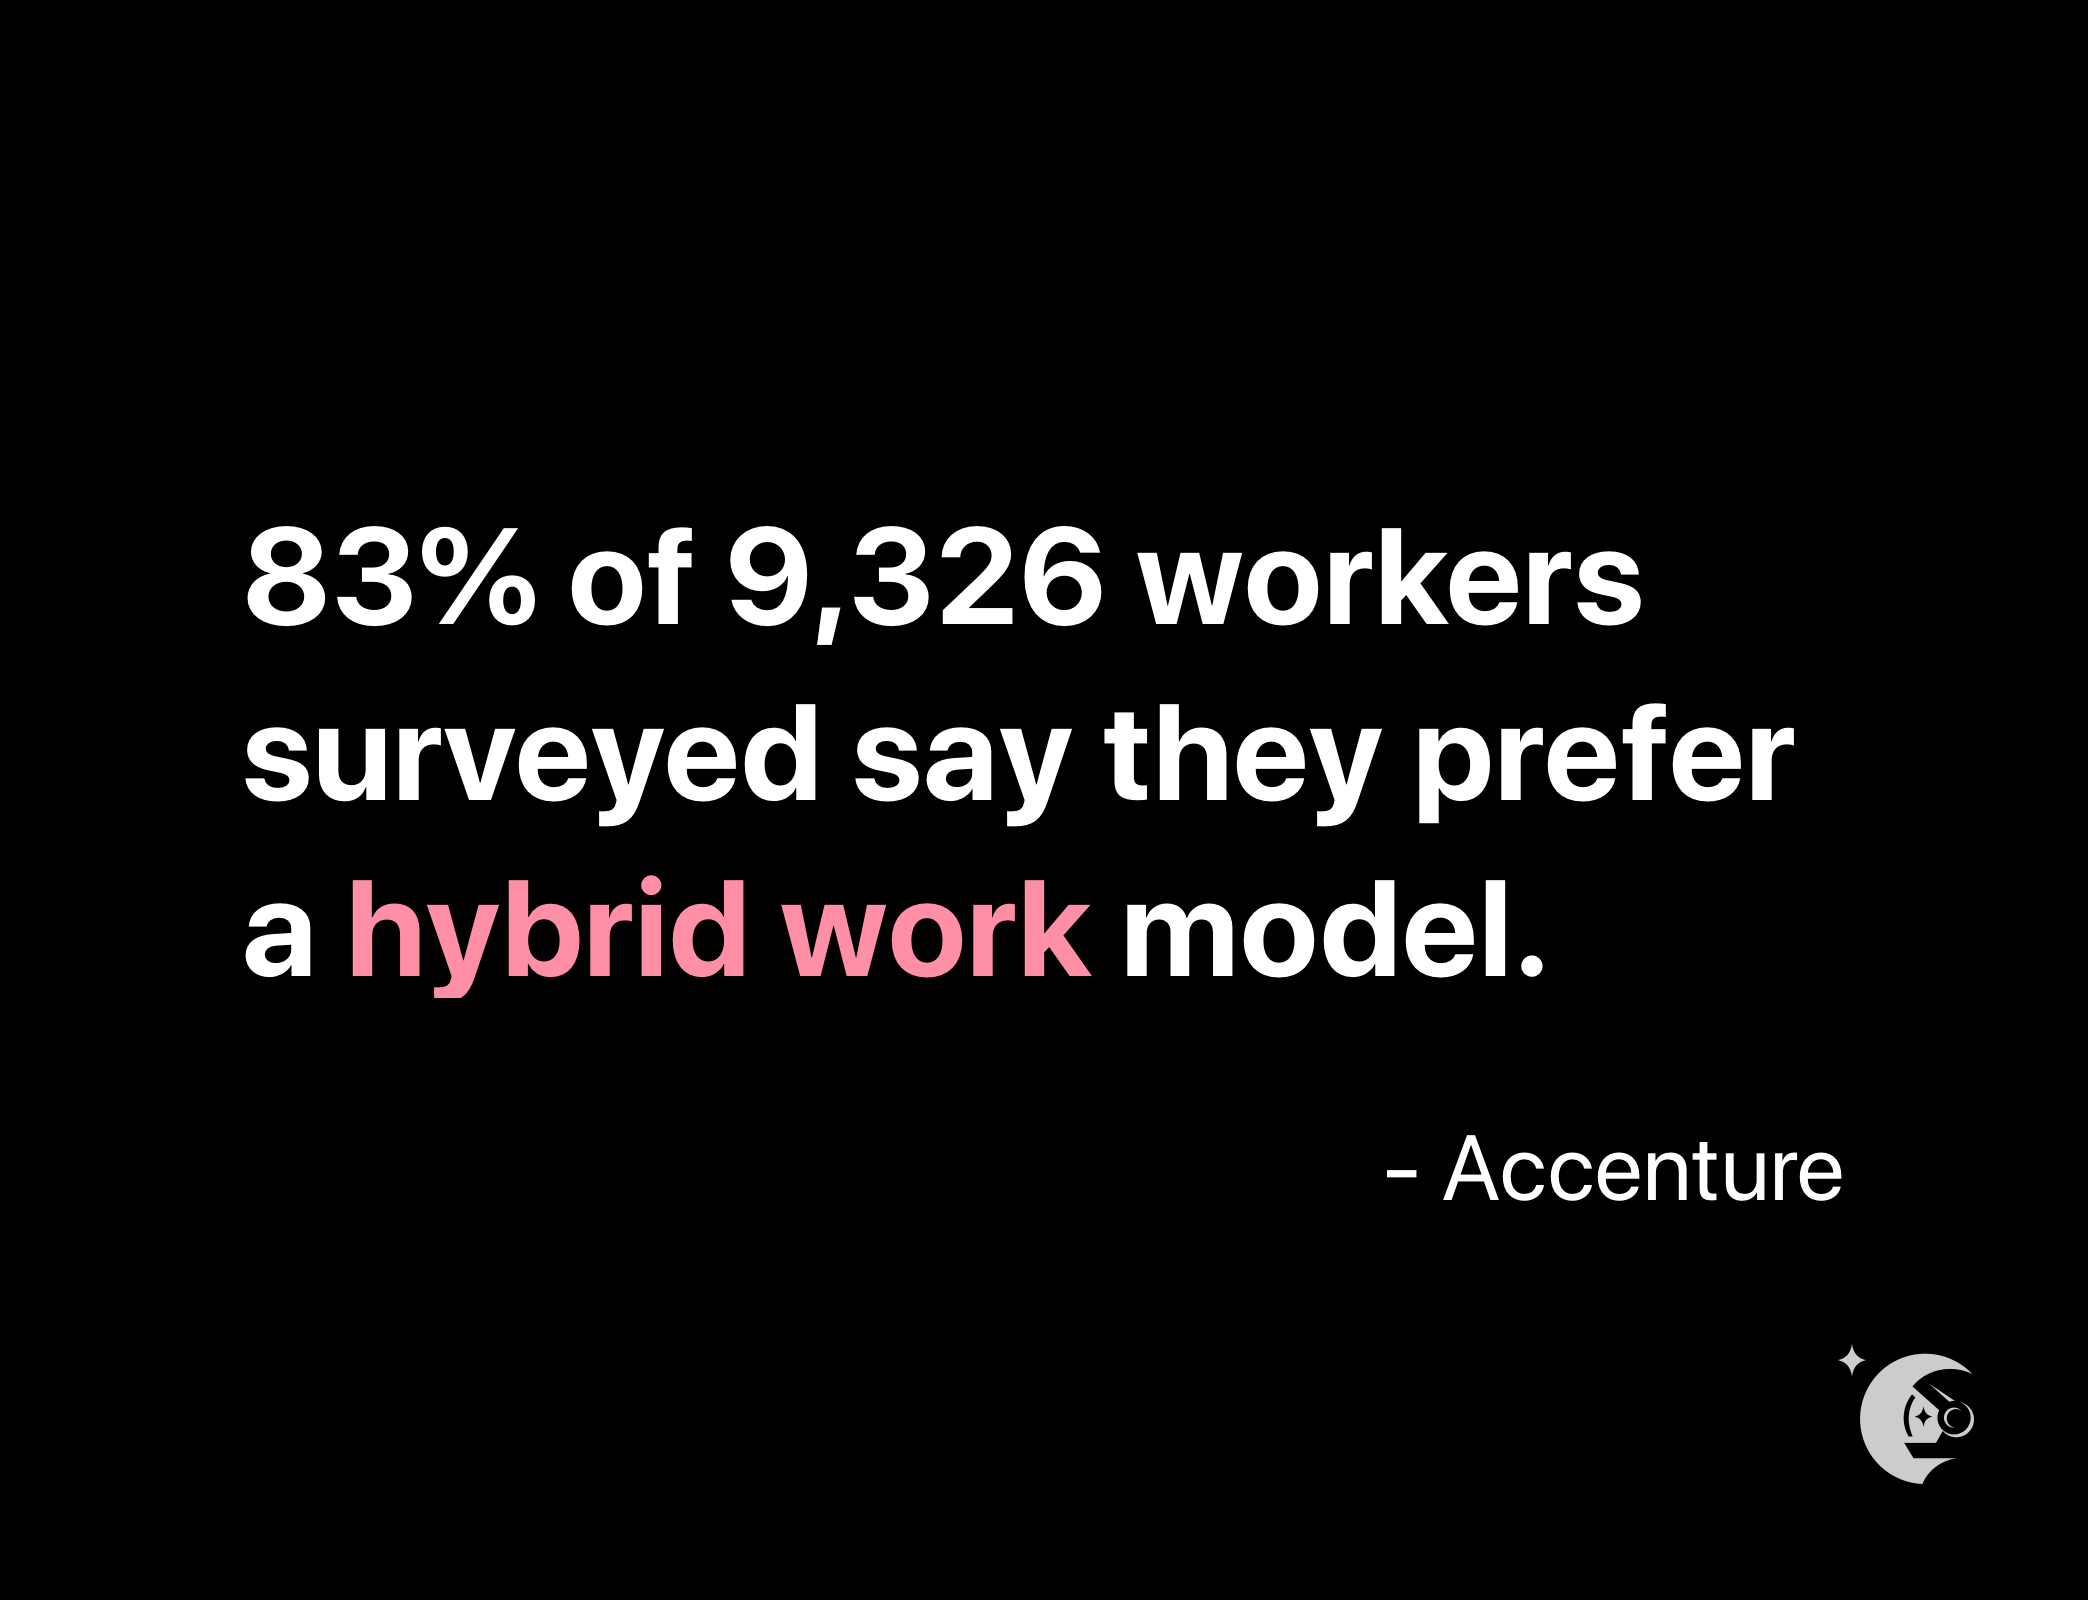 83% of 9,326 workers surveyed say they prefer a hybrid workplace model